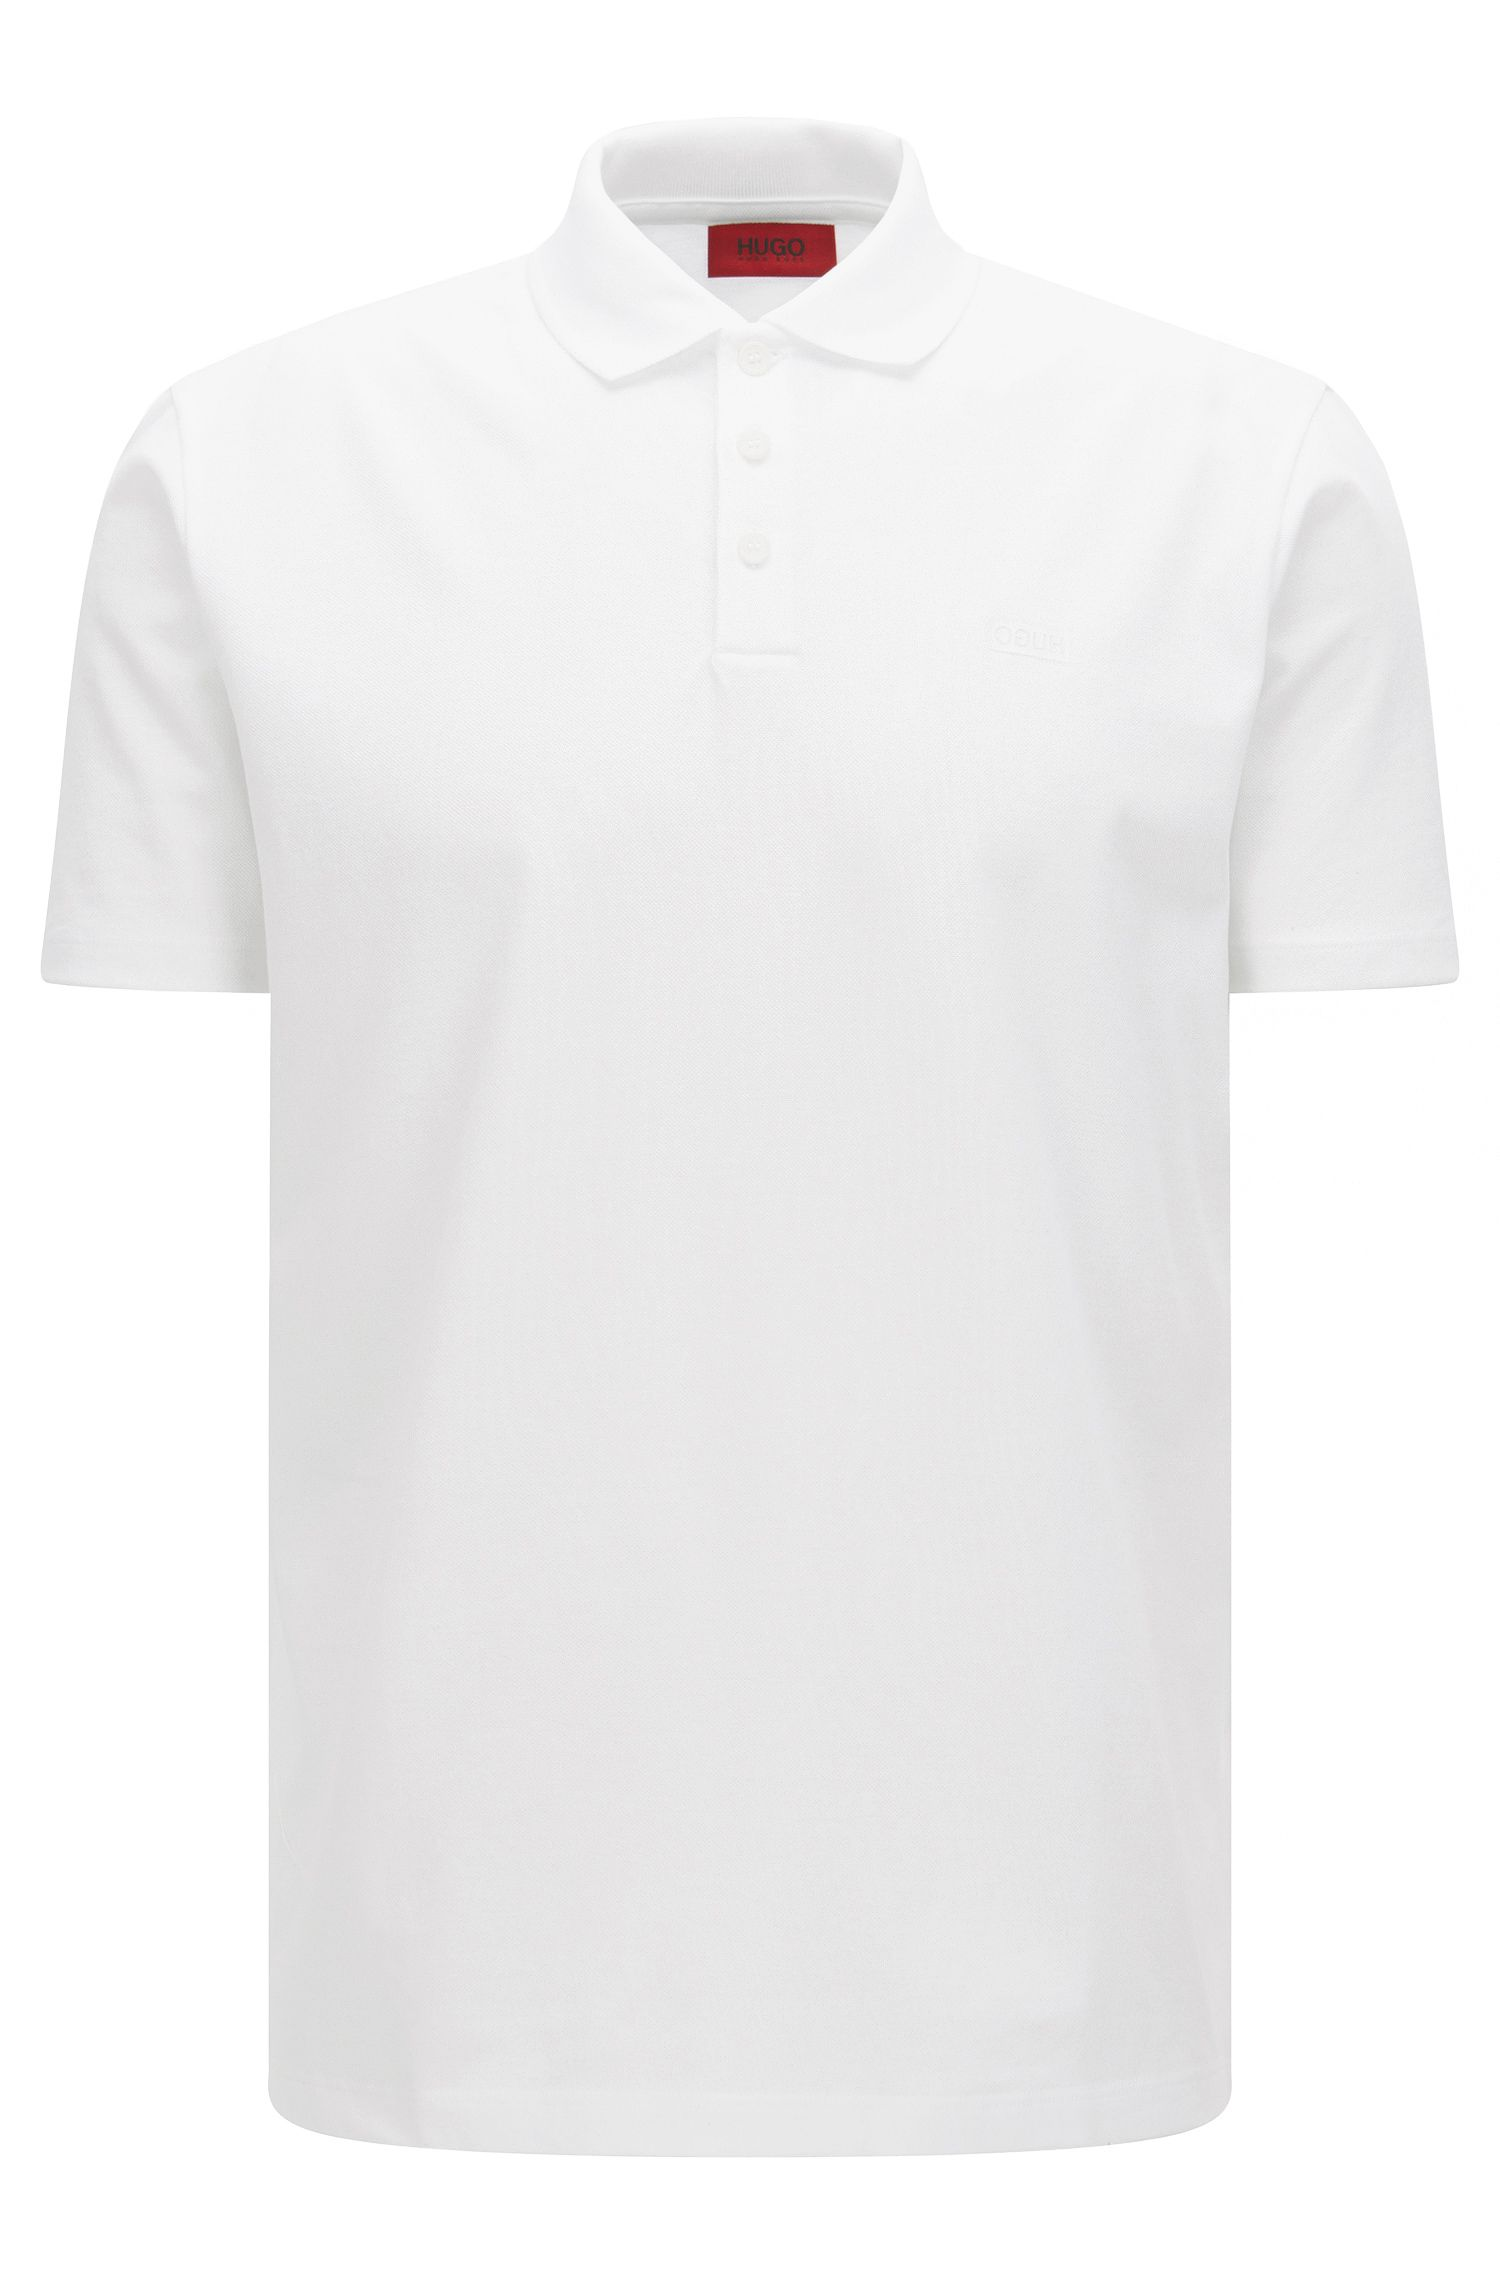 Piqué cotton polo shirt with reverse logo